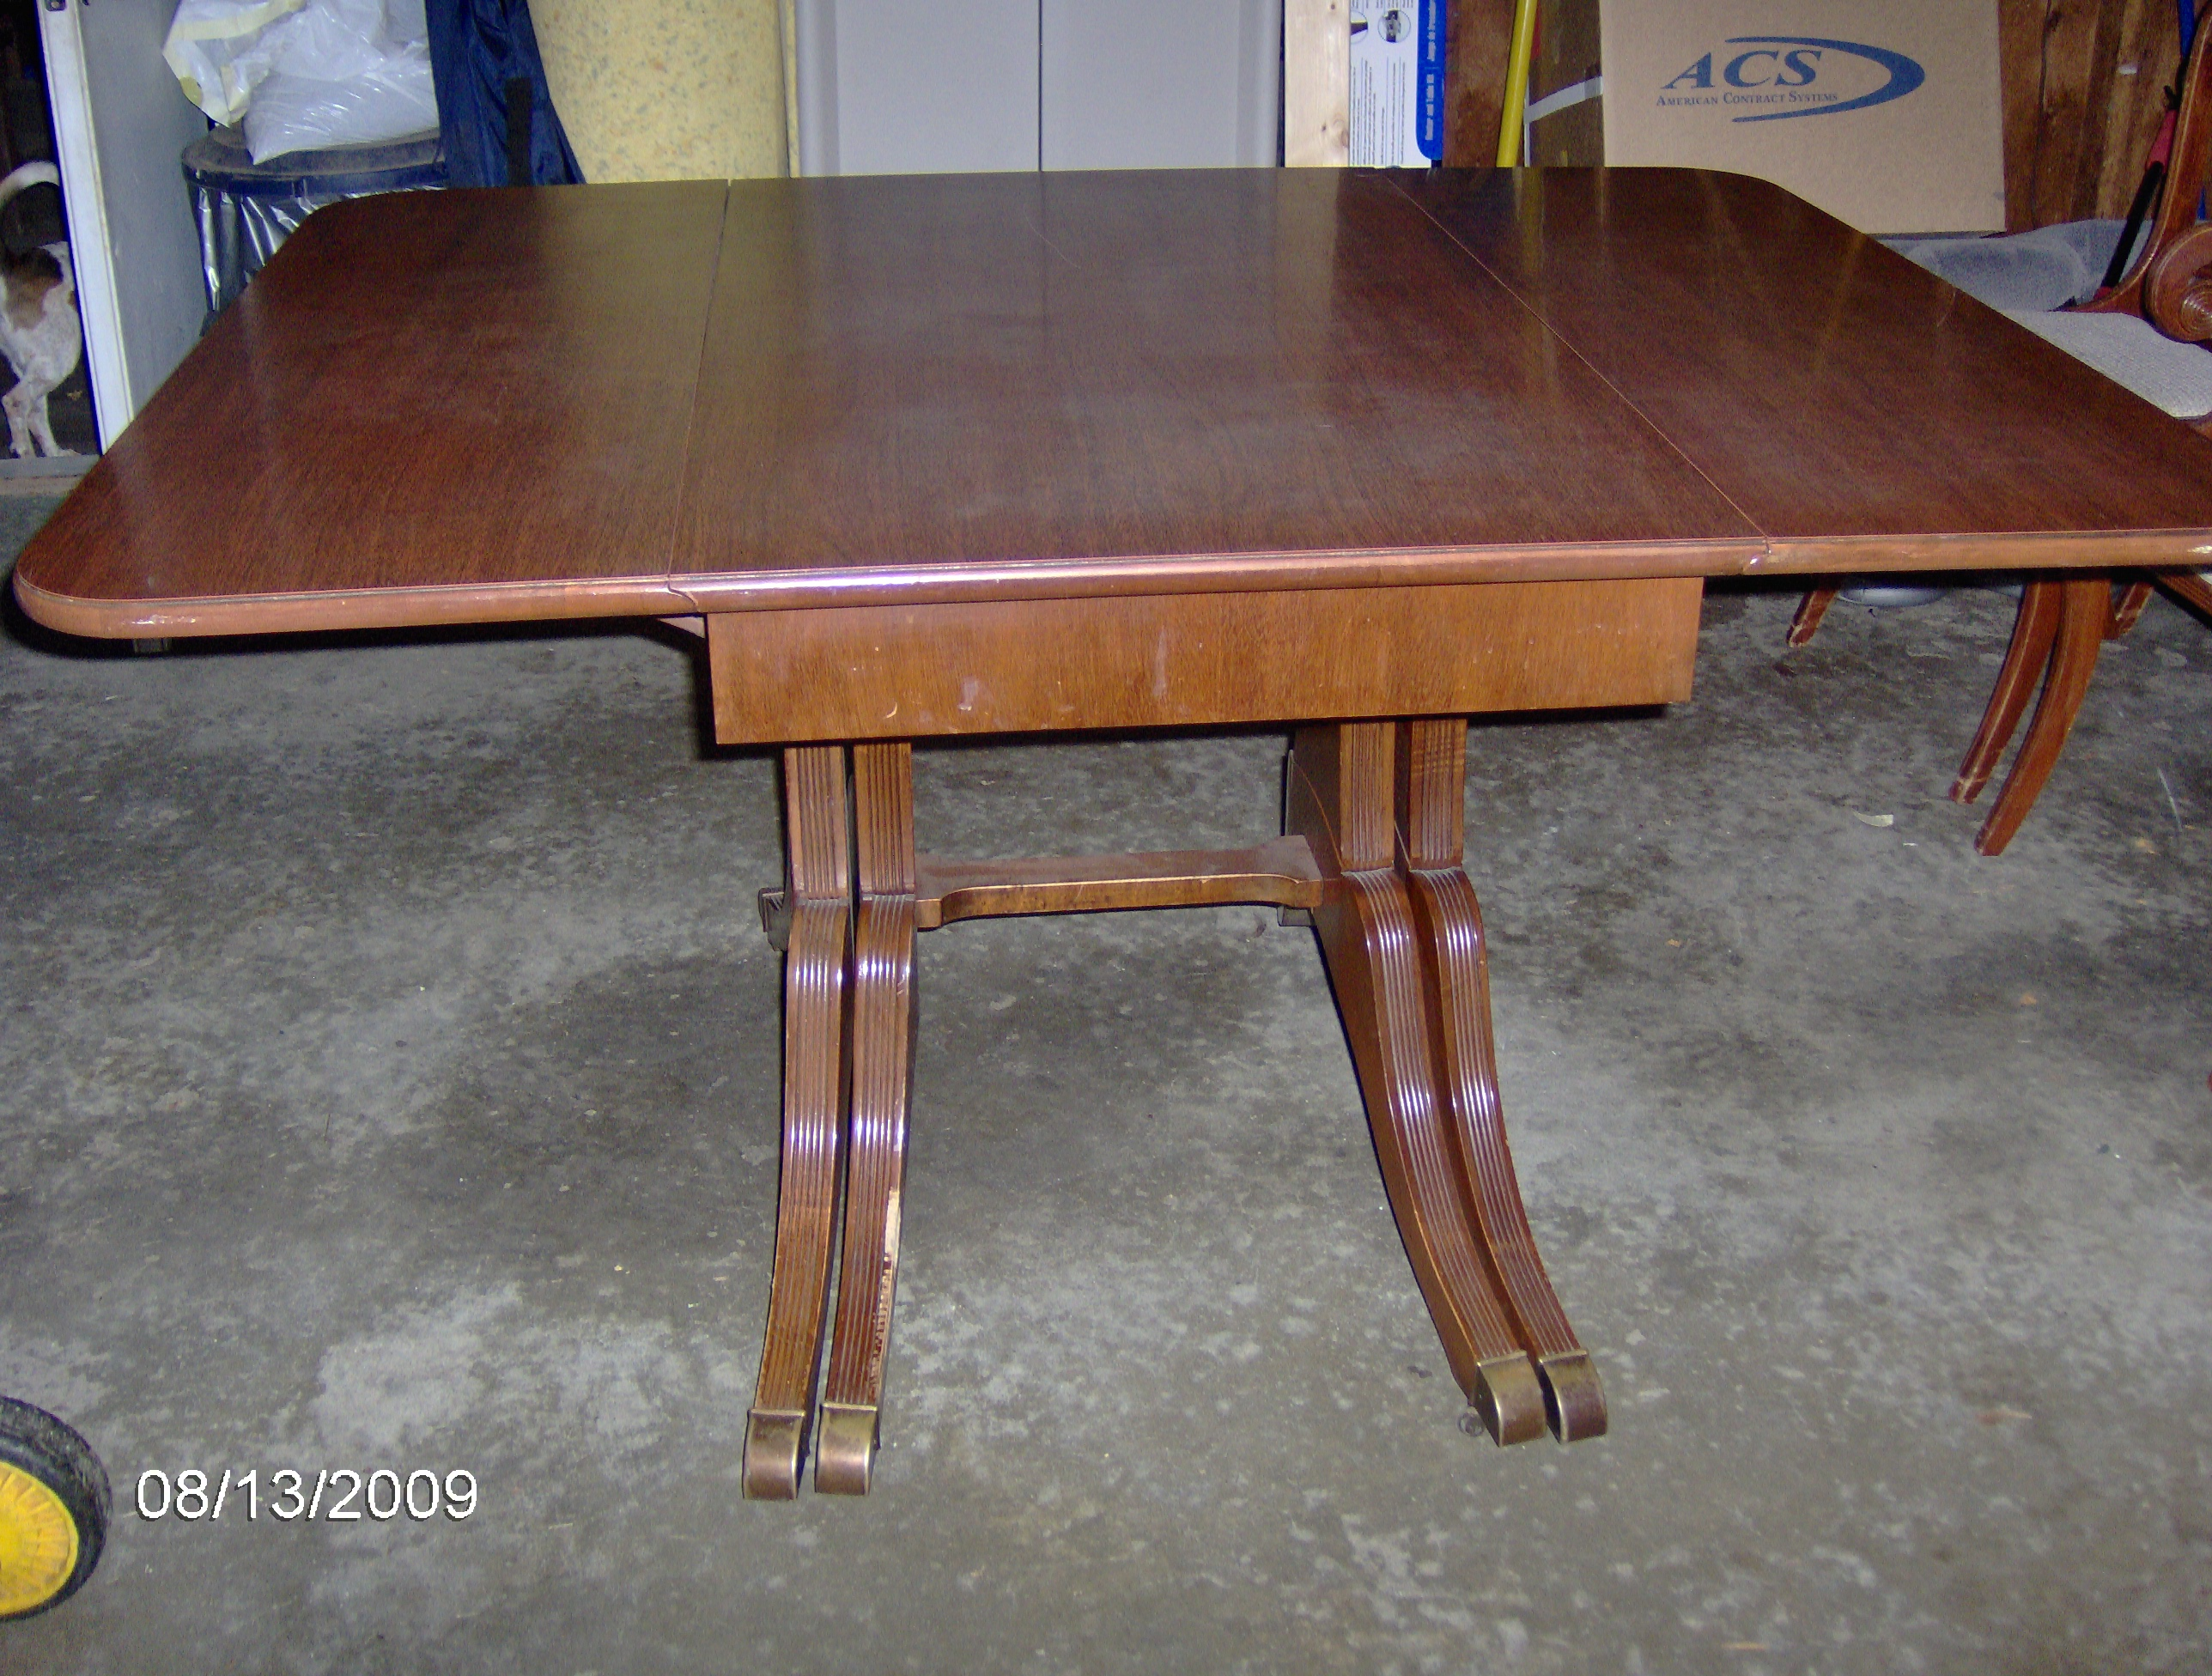 Antiques Com Classifieds Antiques Antique Furniture Antique Tables Dining Sets For Sale Catalog 28